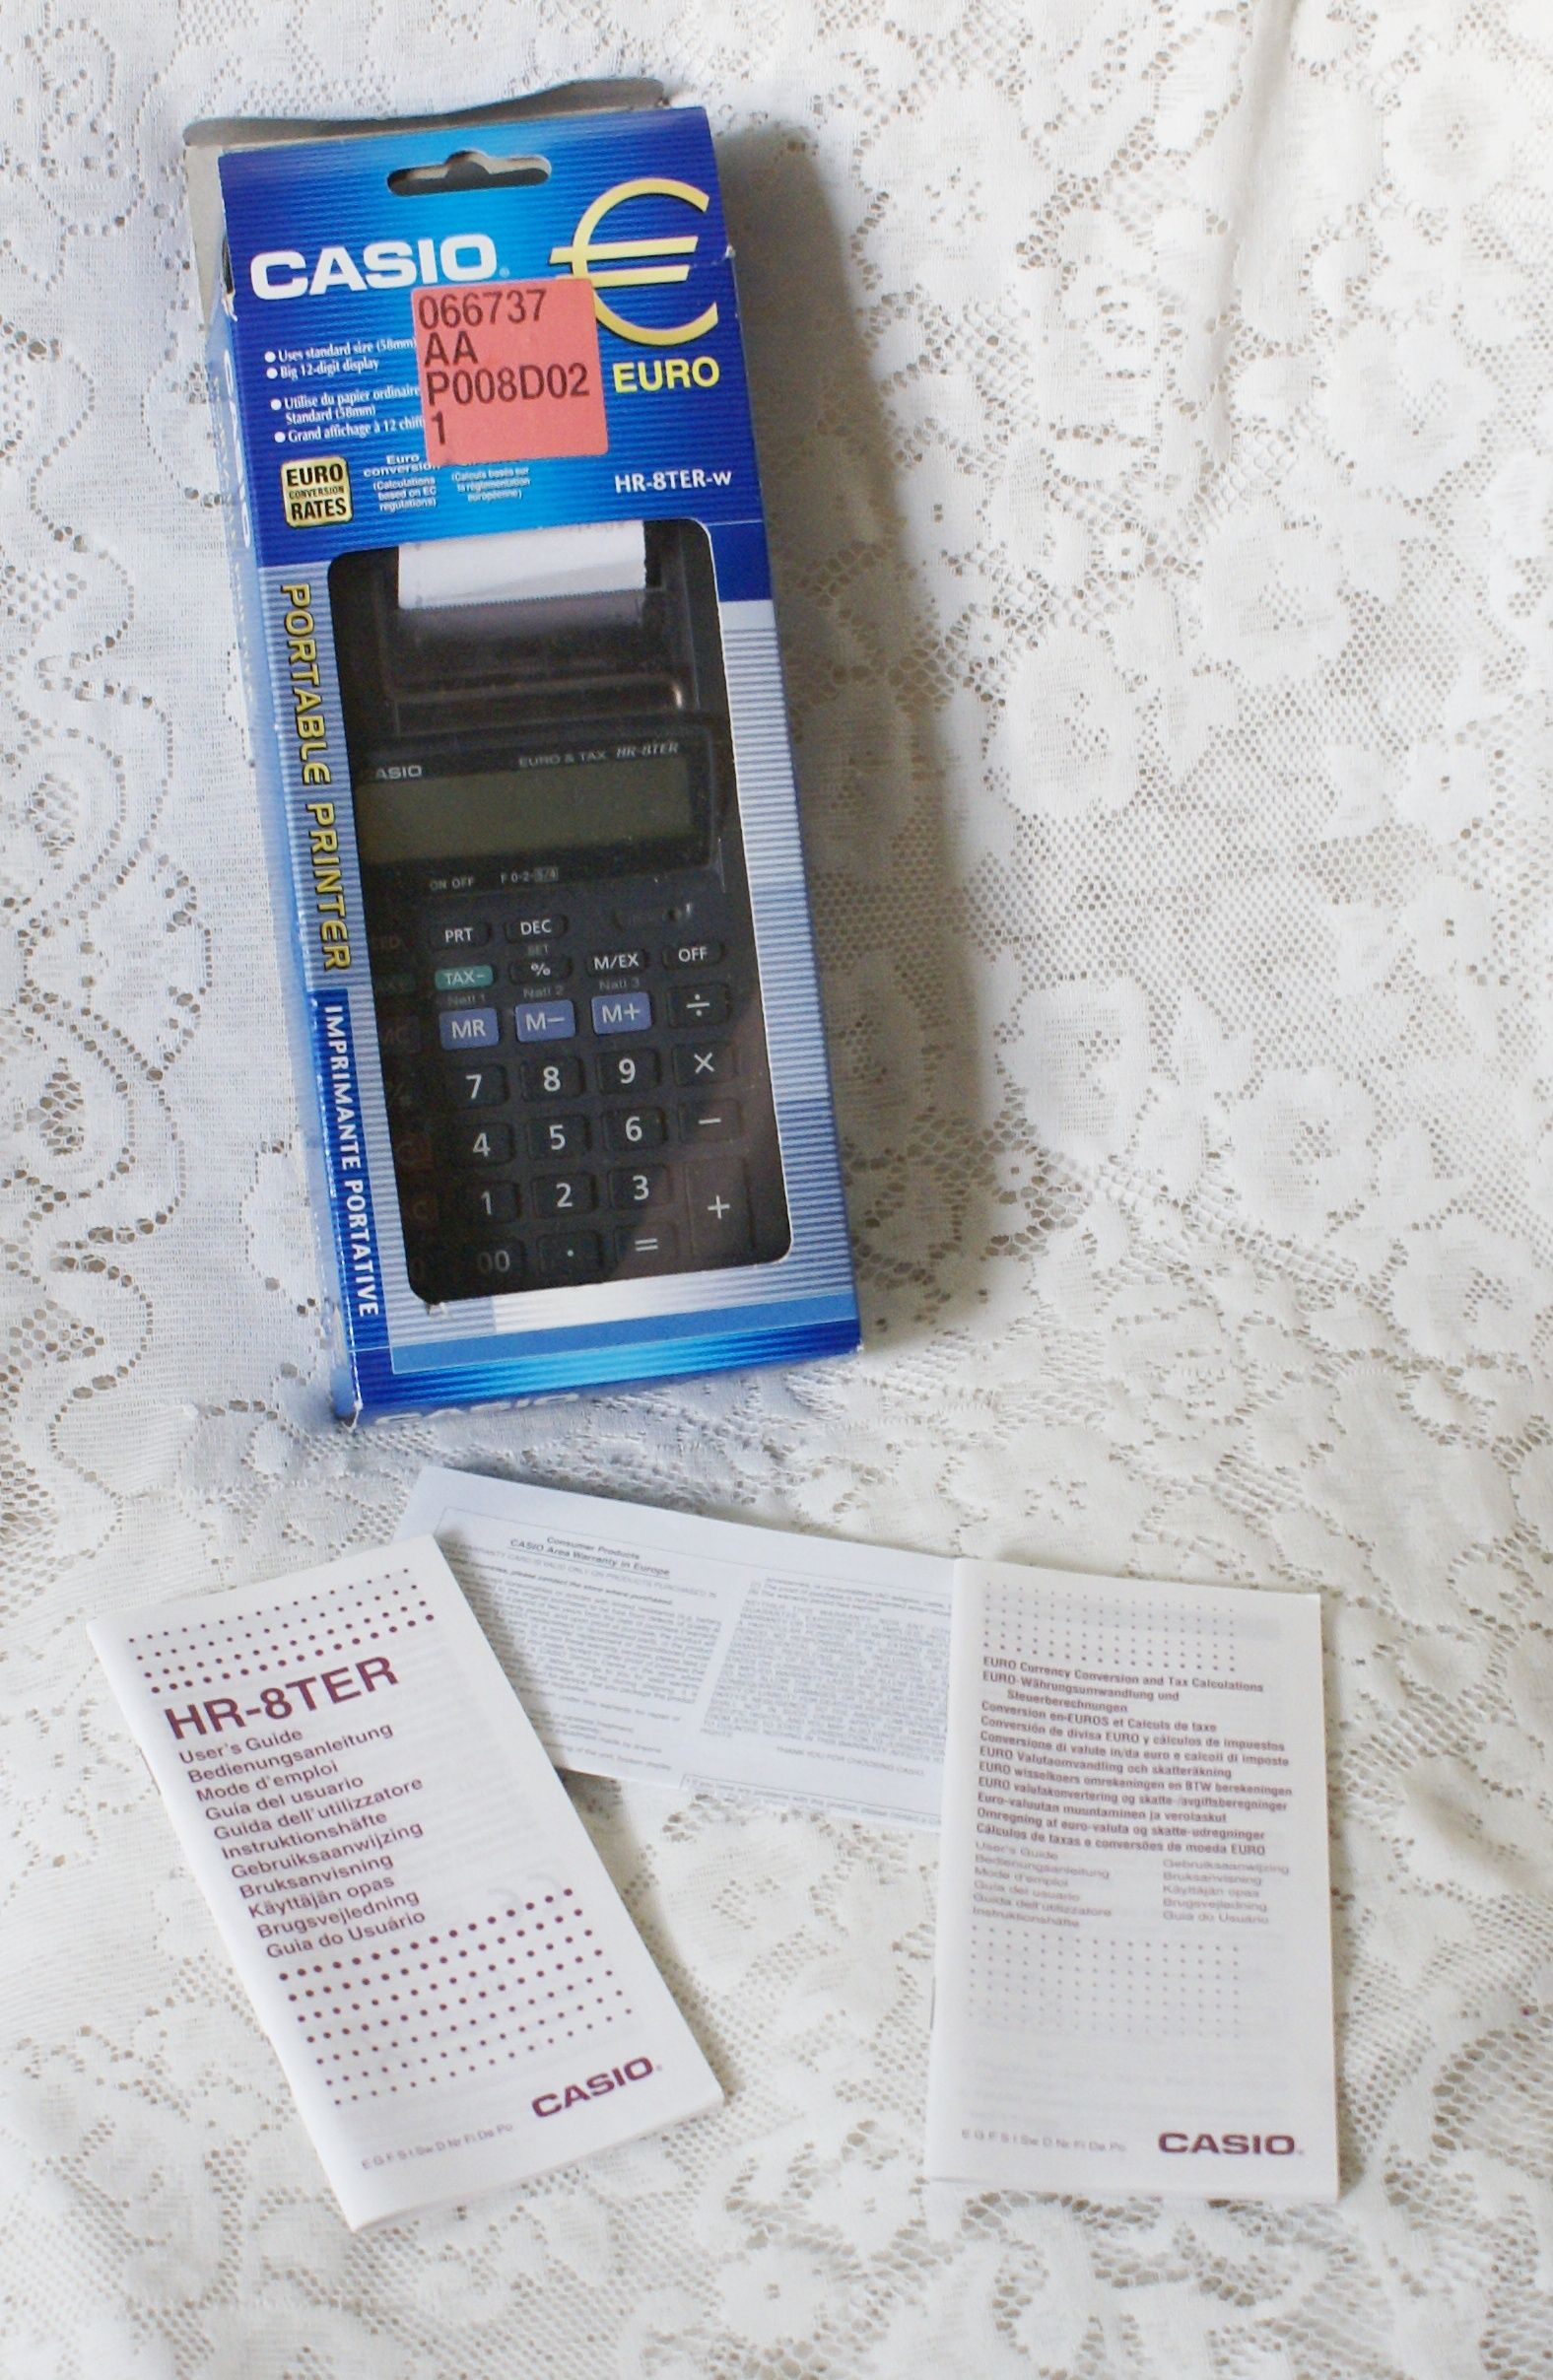 Casio Portable Printing Calculator Hr 8ter W 12 Digit Euro Conversion Box Etc